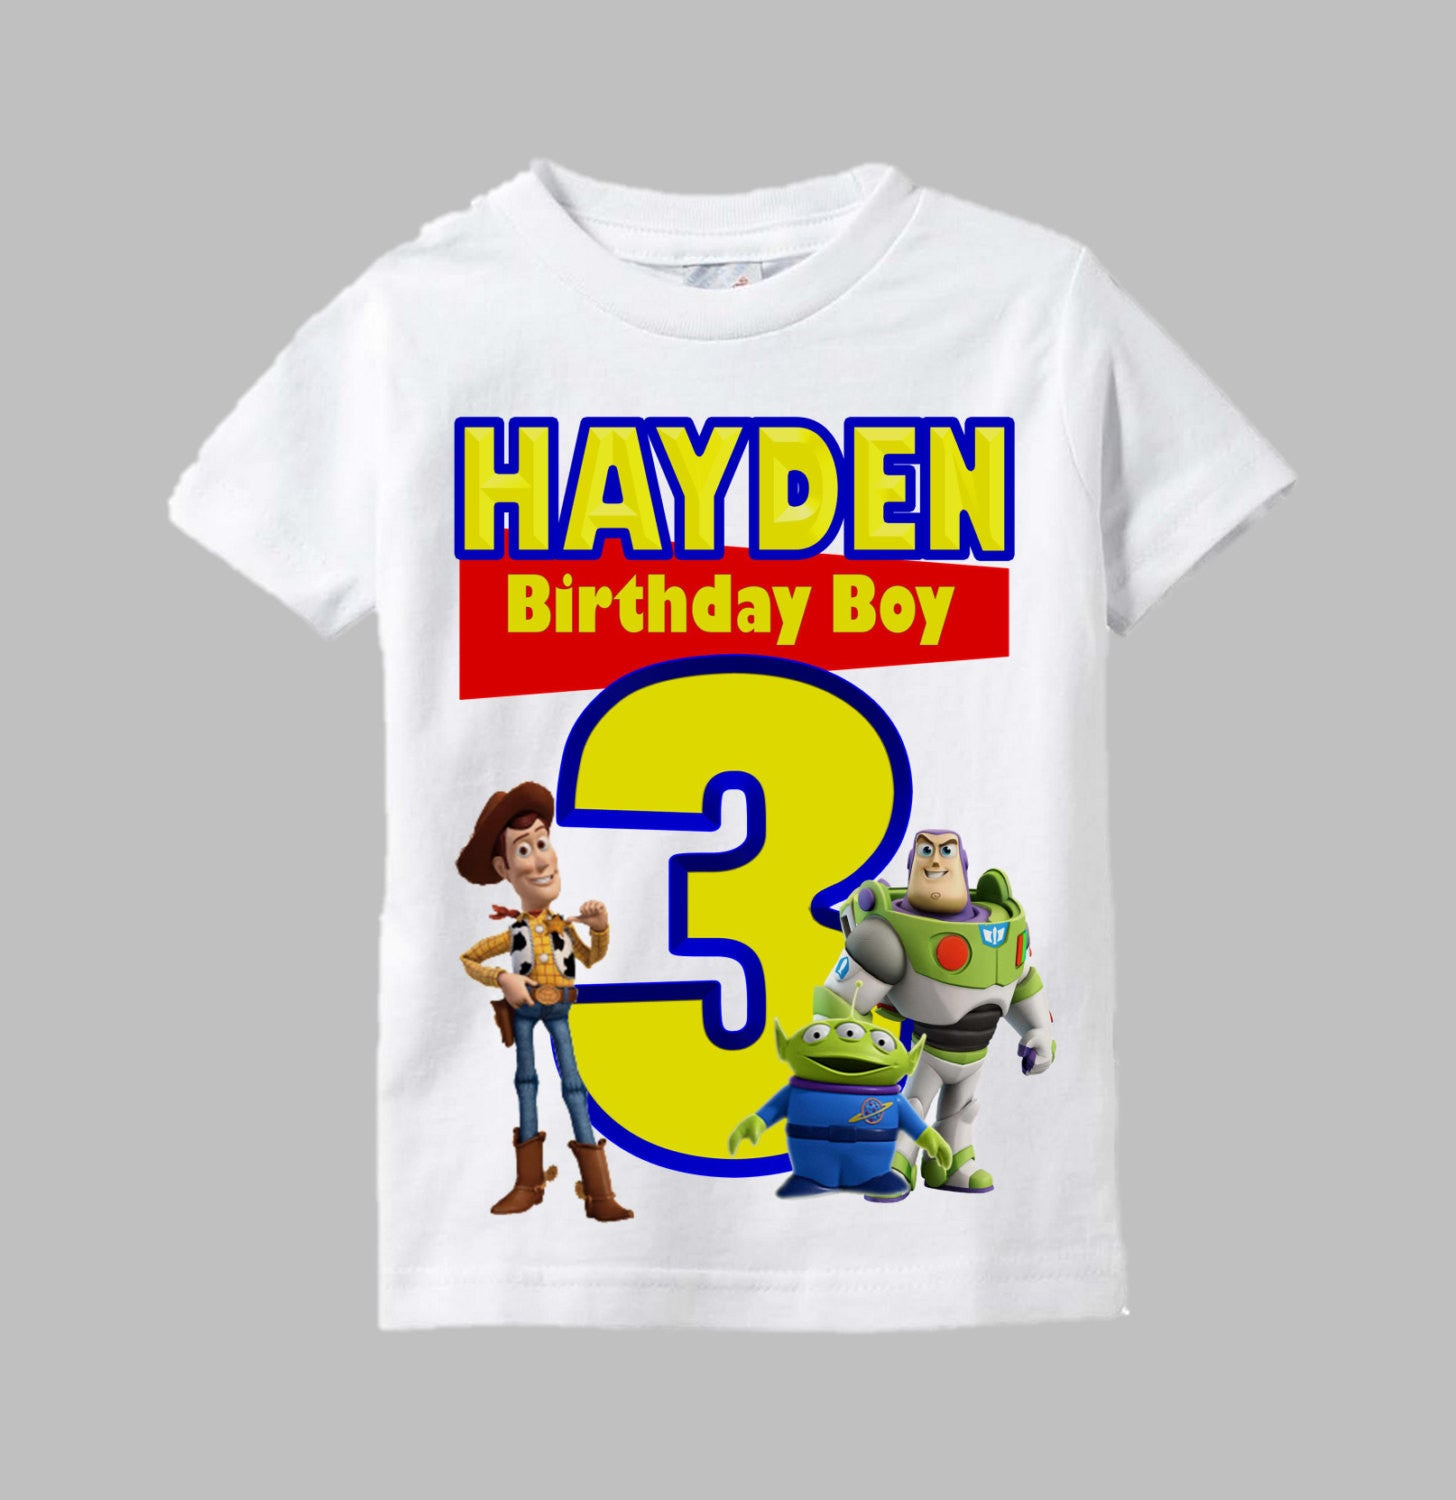 88a0066071f10 Toy Story Birthday Shirt - Toy Story Shirt with Woody and Buzz